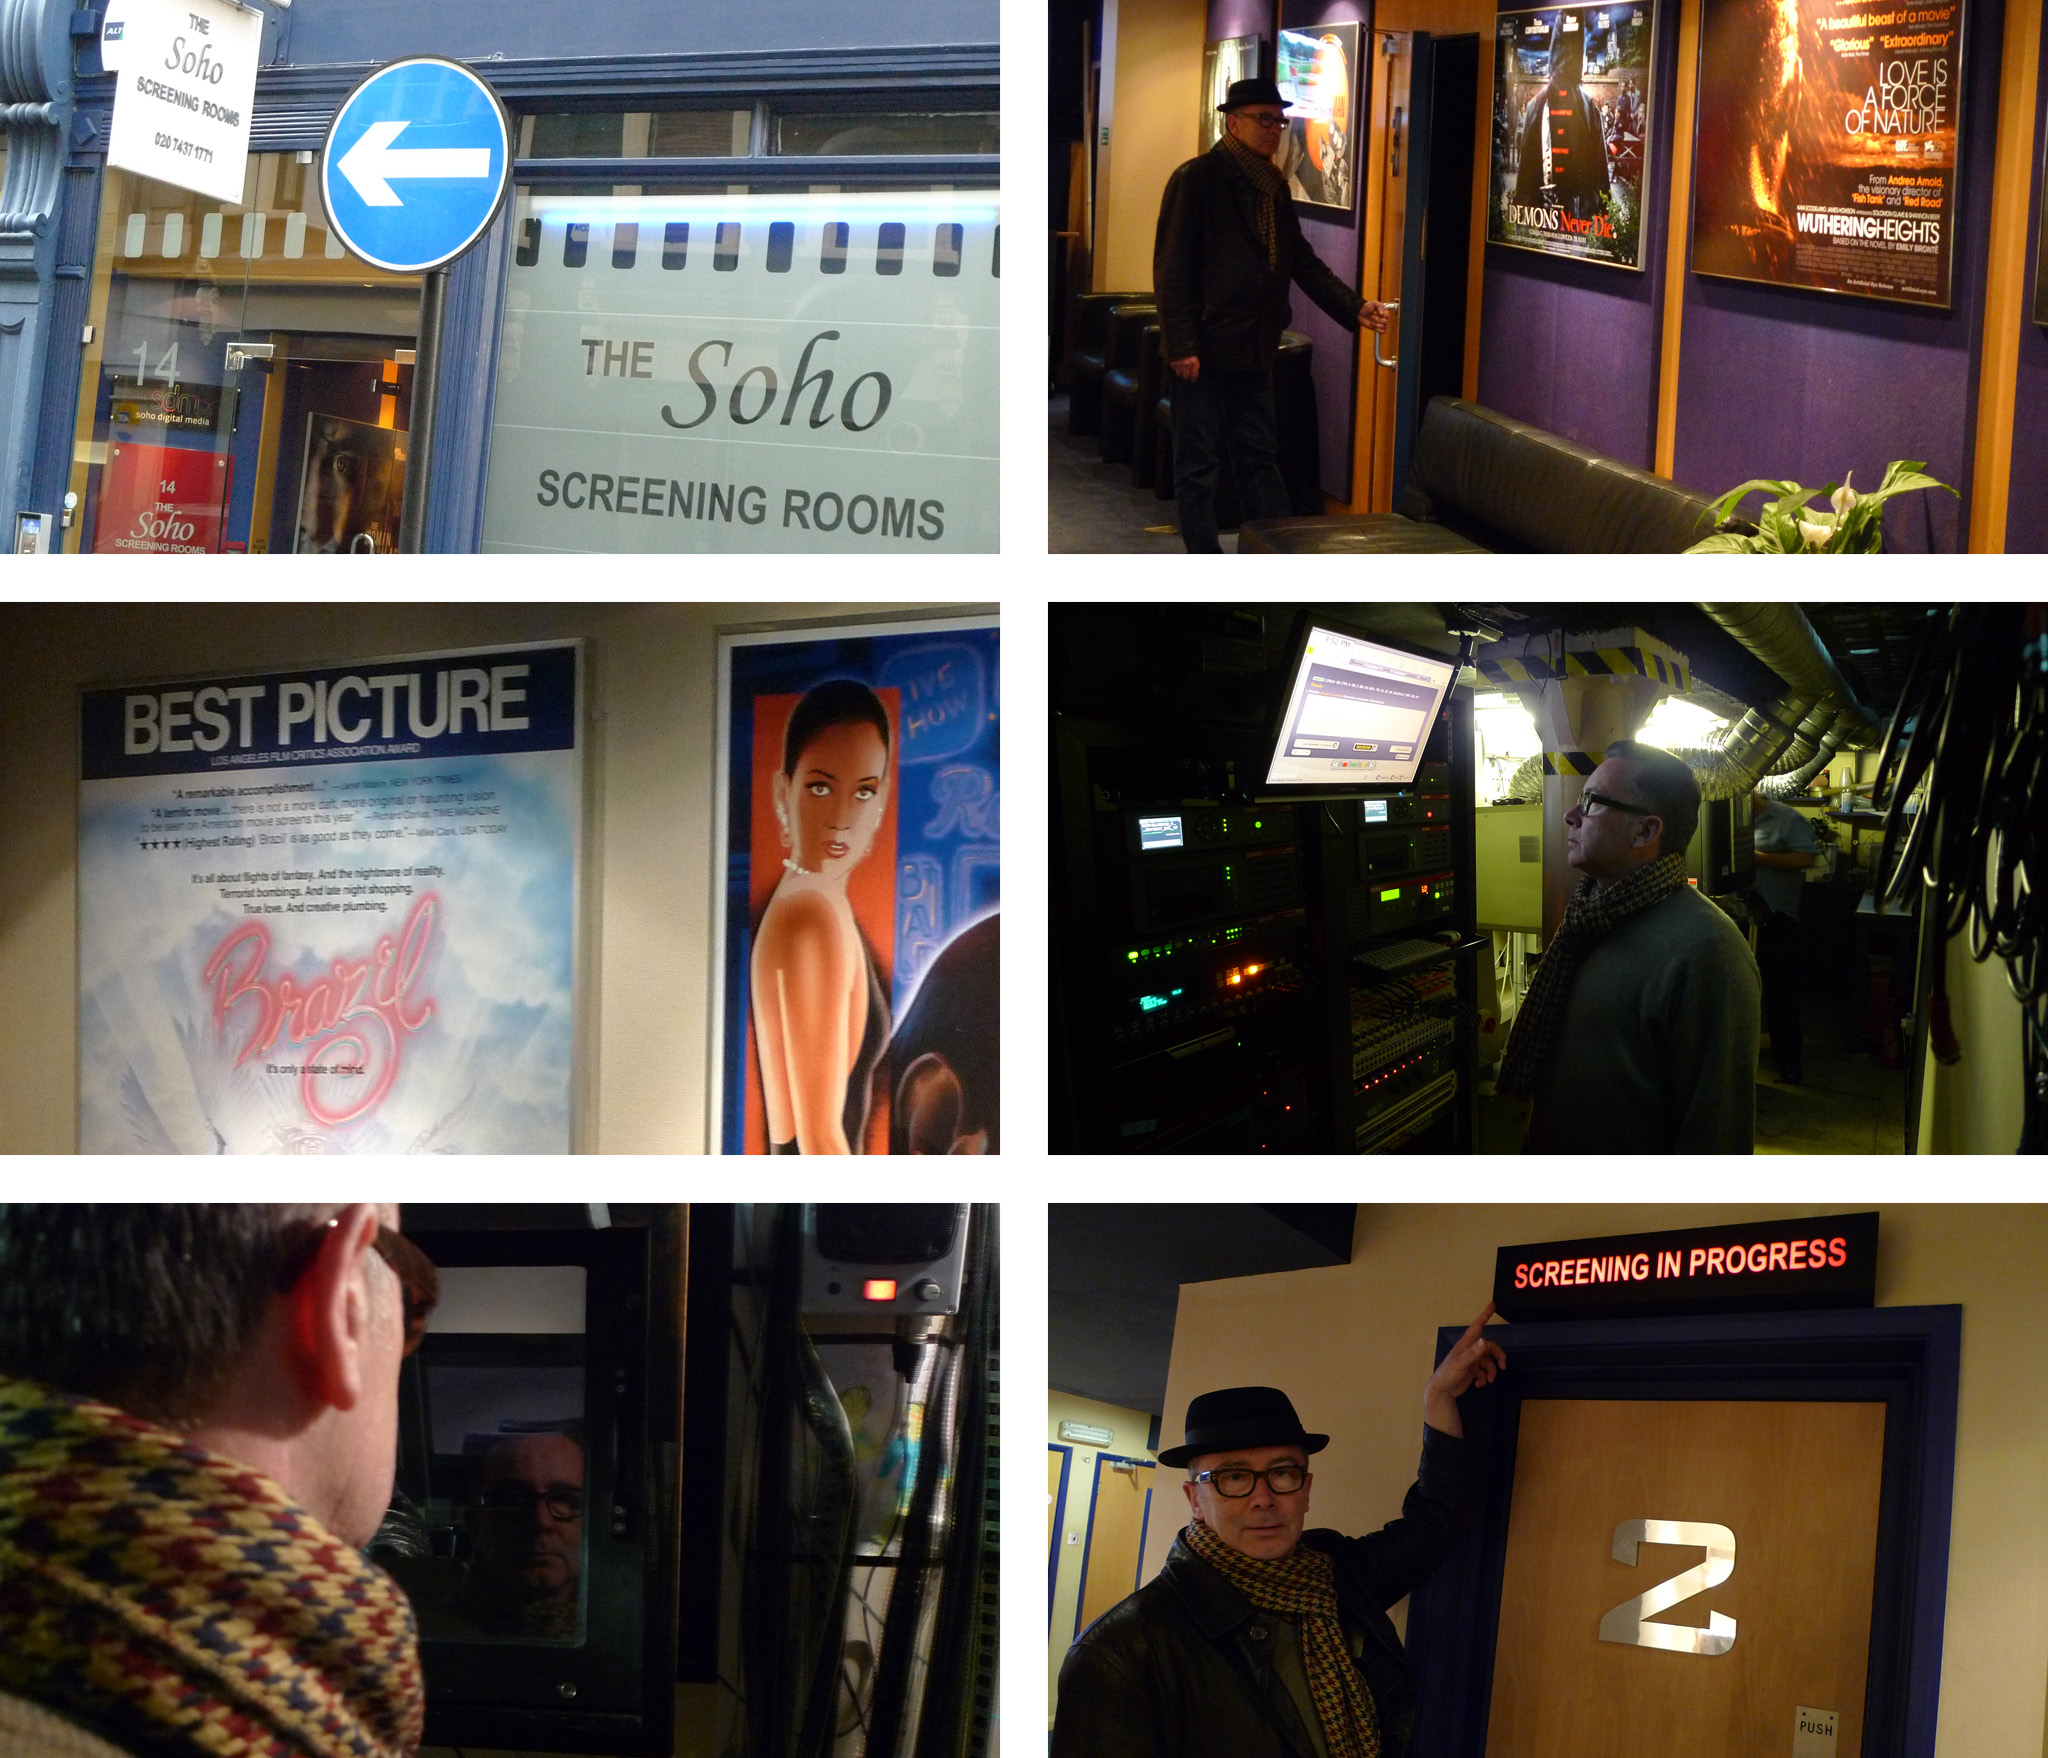 The Soho Screening Rooms